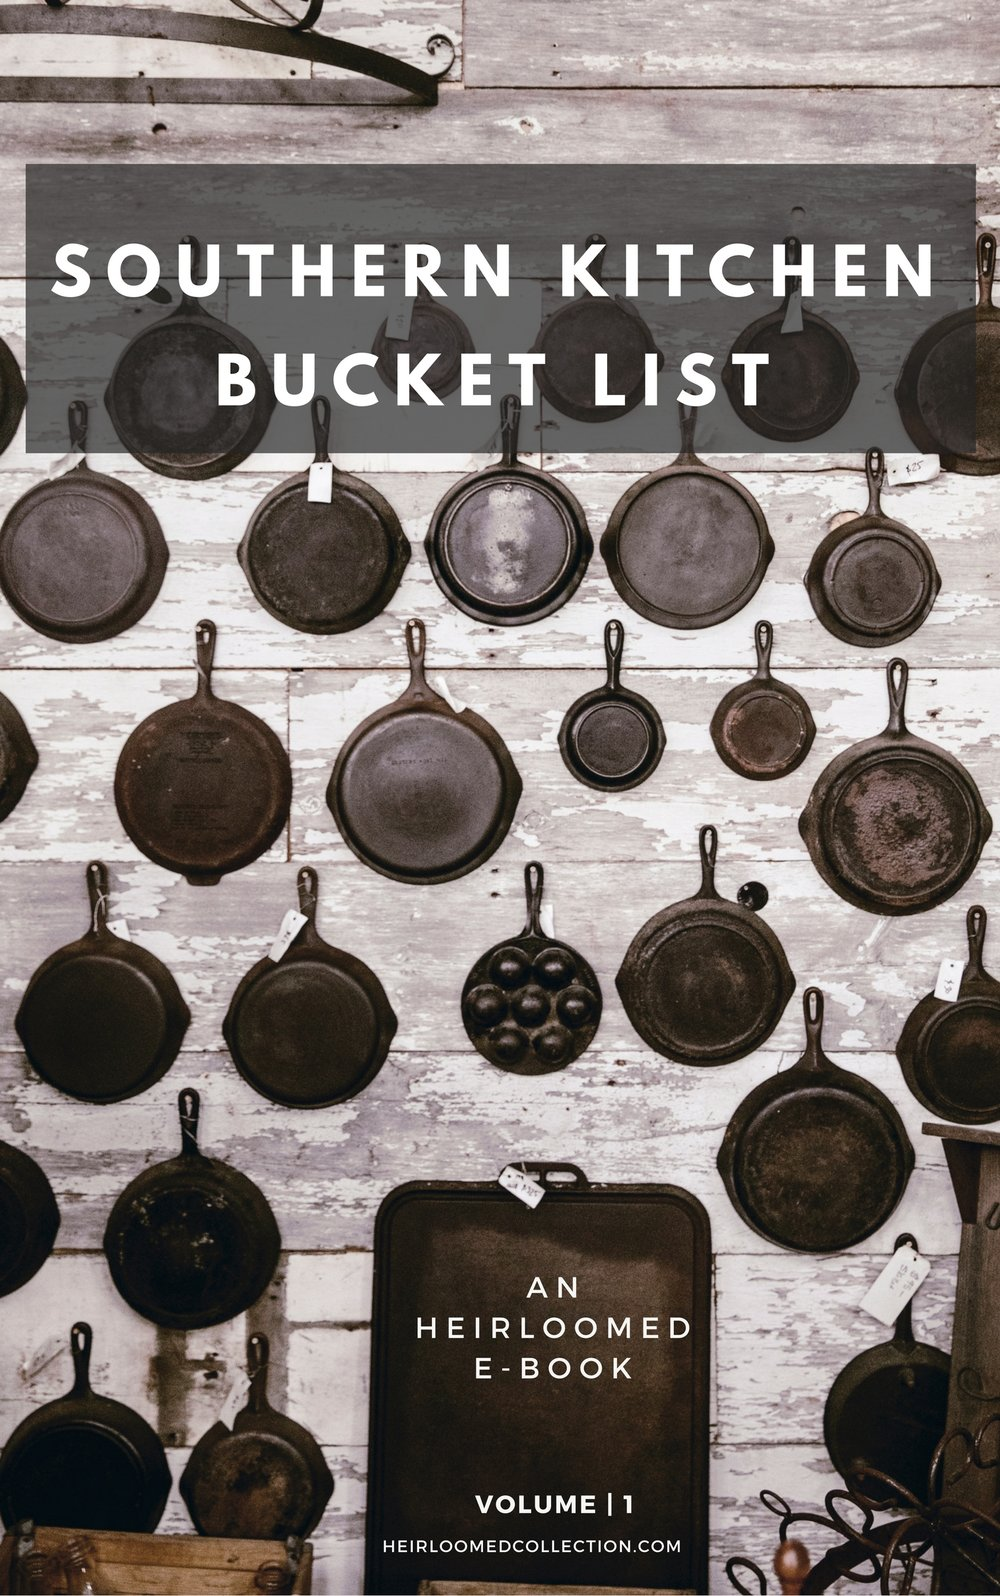 SOUTHERN KITCHEN BUCKET LIST EBOOK.jpg